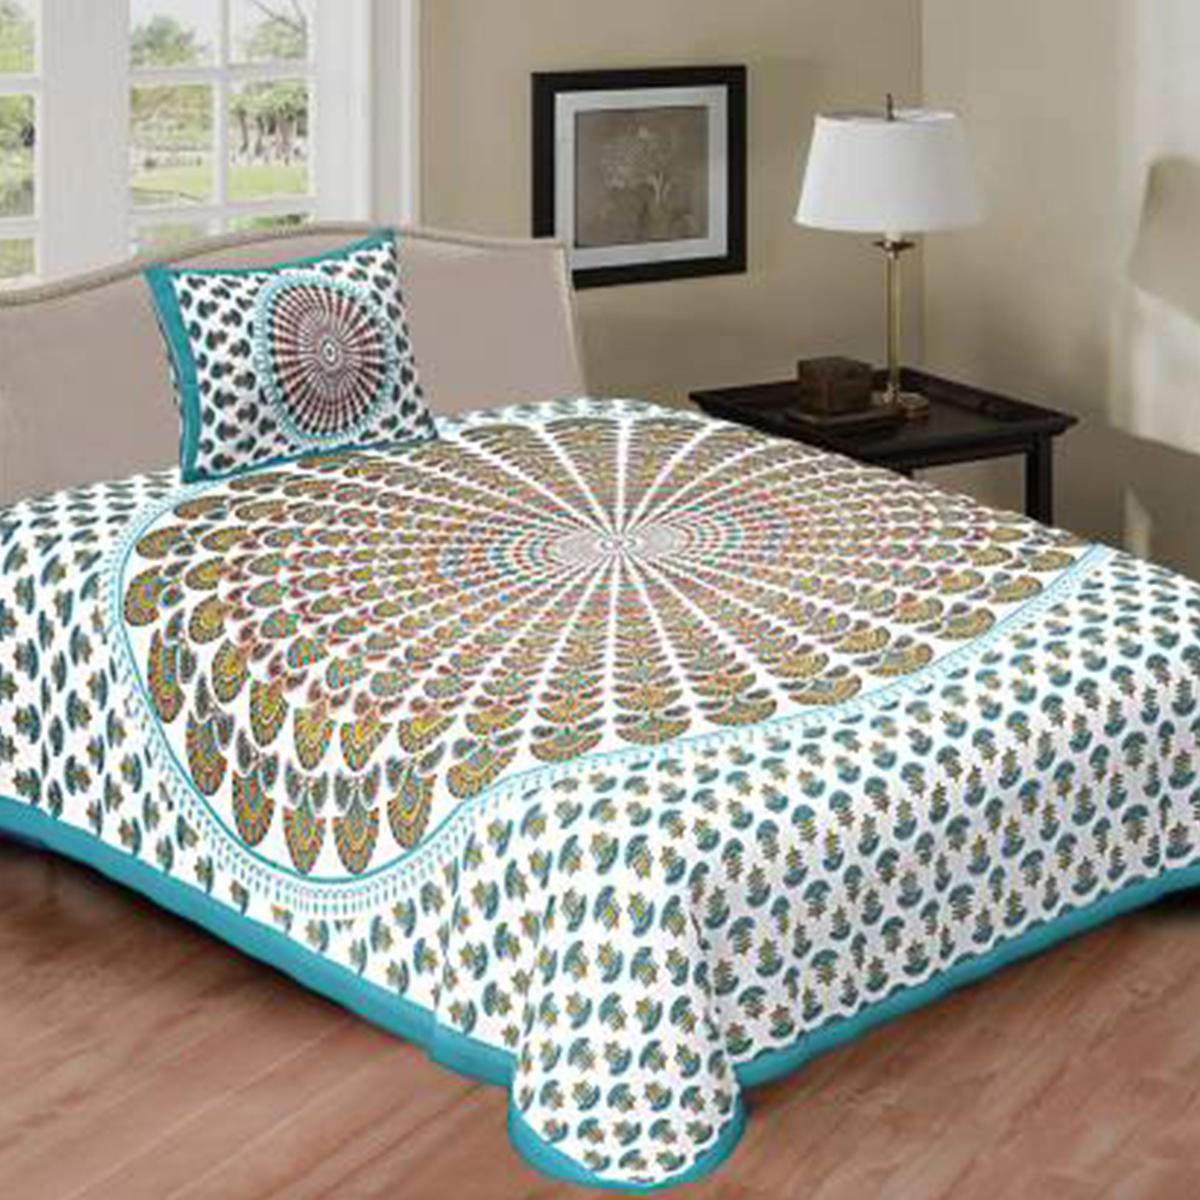 POOJA FASHION - C-Green Colored Printed Single Cotton Bedsheet With 1 Pillow Cover